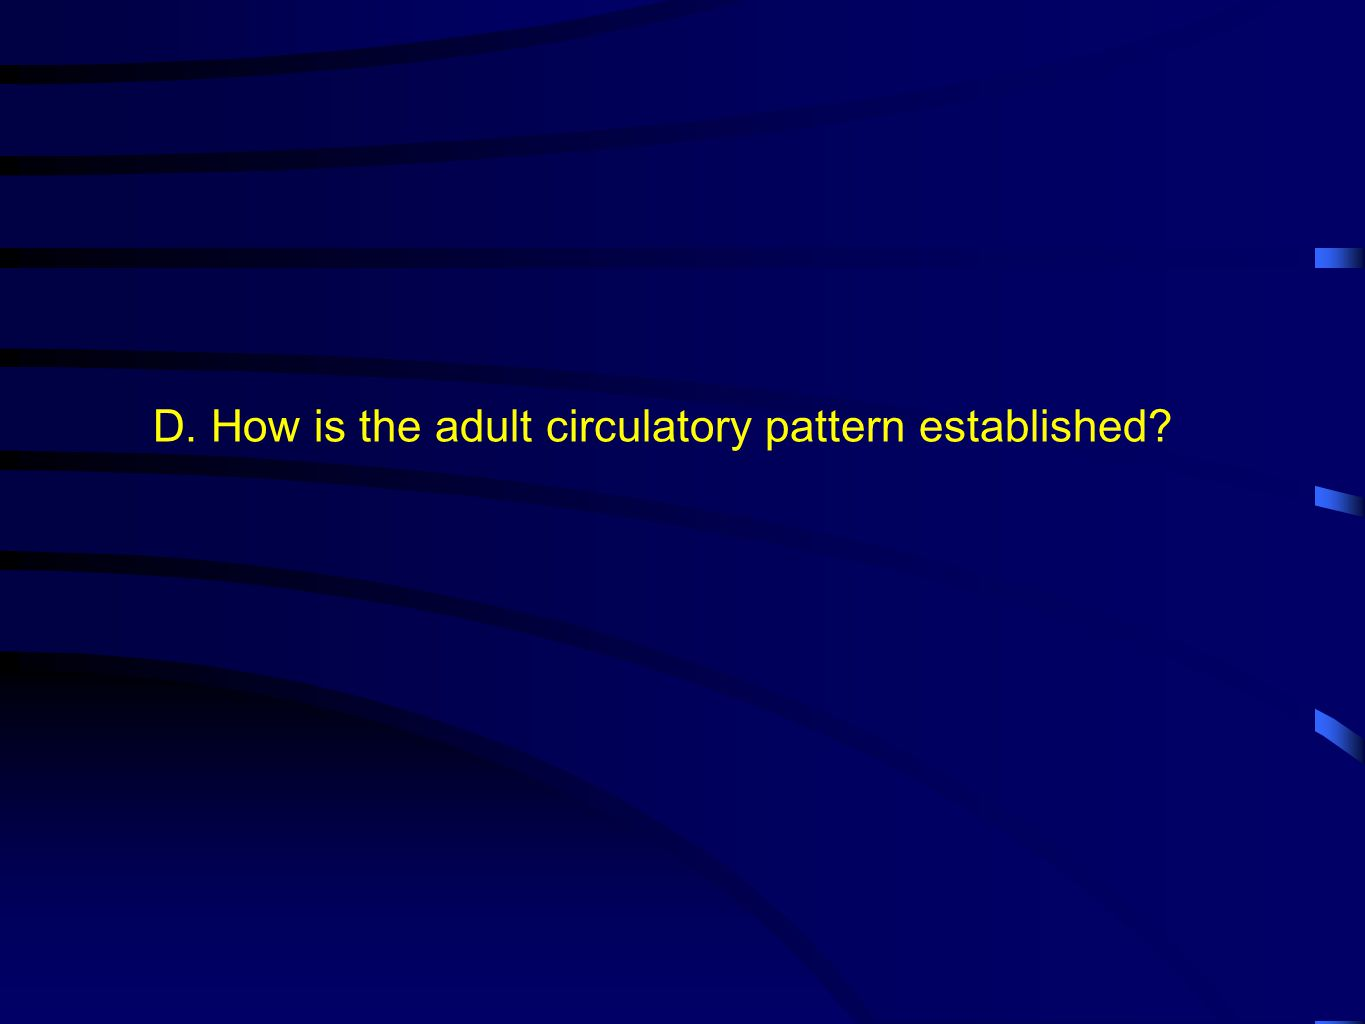 D. How is the adult circulatory pattern established